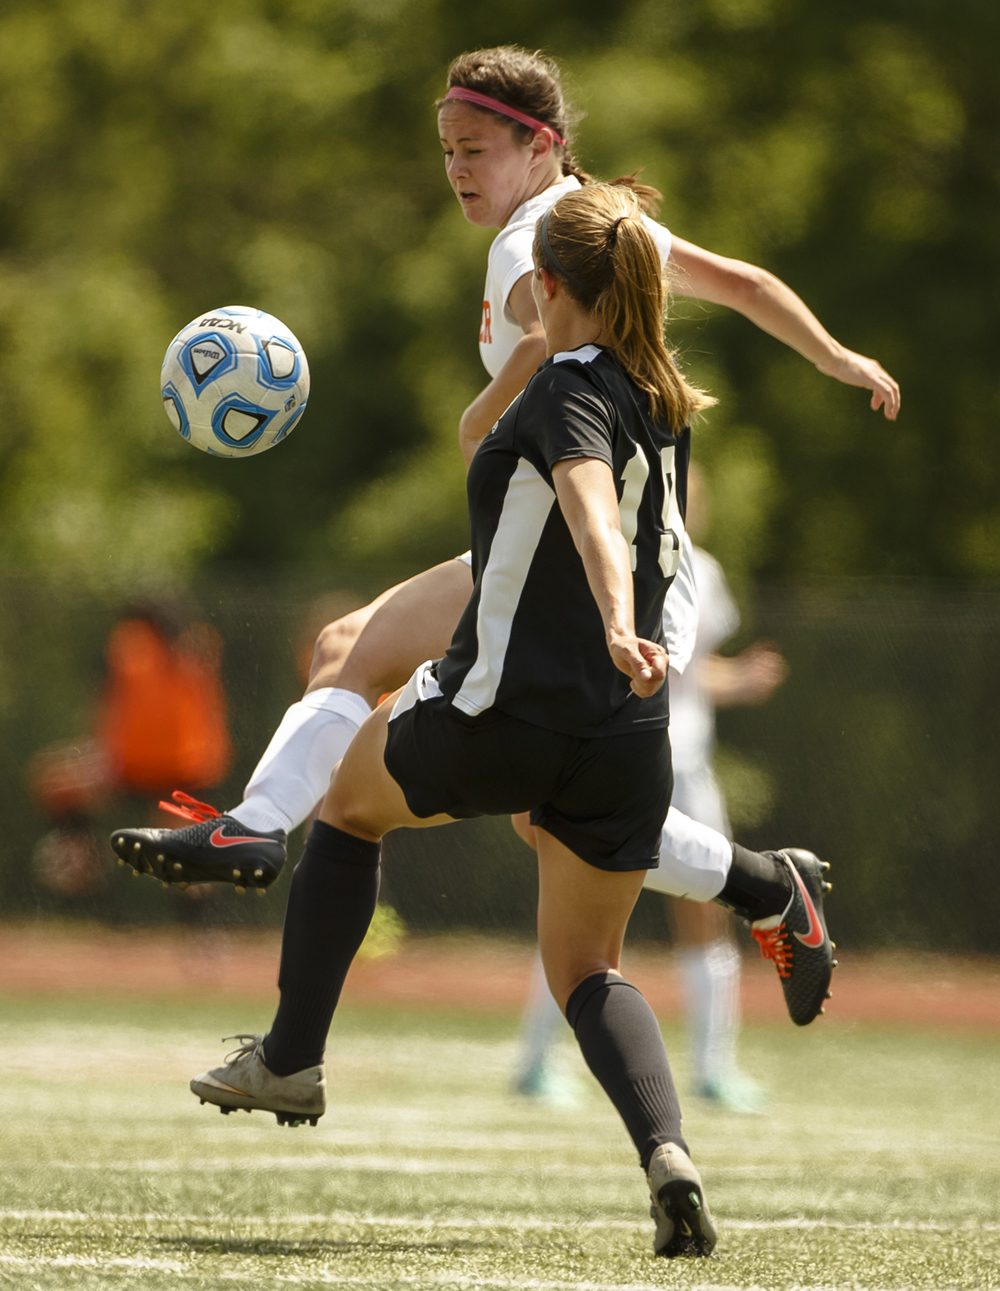 Rochester's Amanda Williams (8) sends the ball back over midfield out of the air against Sycamore's Anna Haub (19) in the second half during the IHSA Class 2A Girls State Soccer Tournament semifinals at North Central College, Friday, June 3, 2016, in Naperville, Ill. Justin L. Fowler/The State Journal-Register